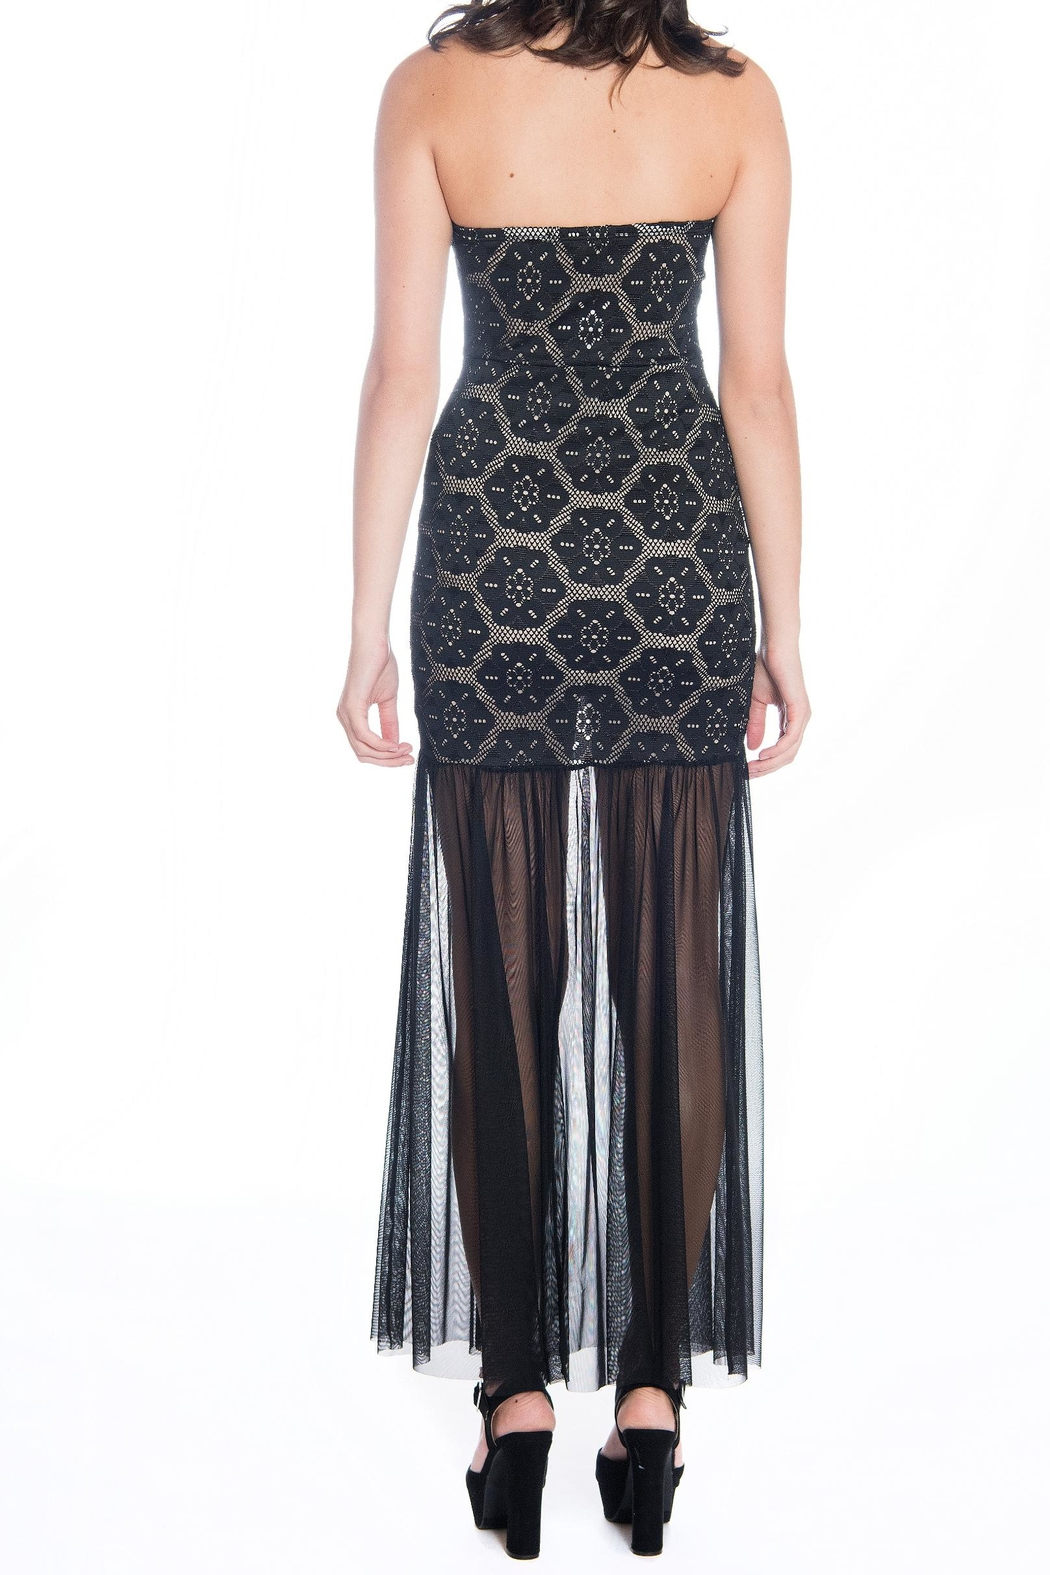 Manito Long Strapless Dress - Side Cropped Image